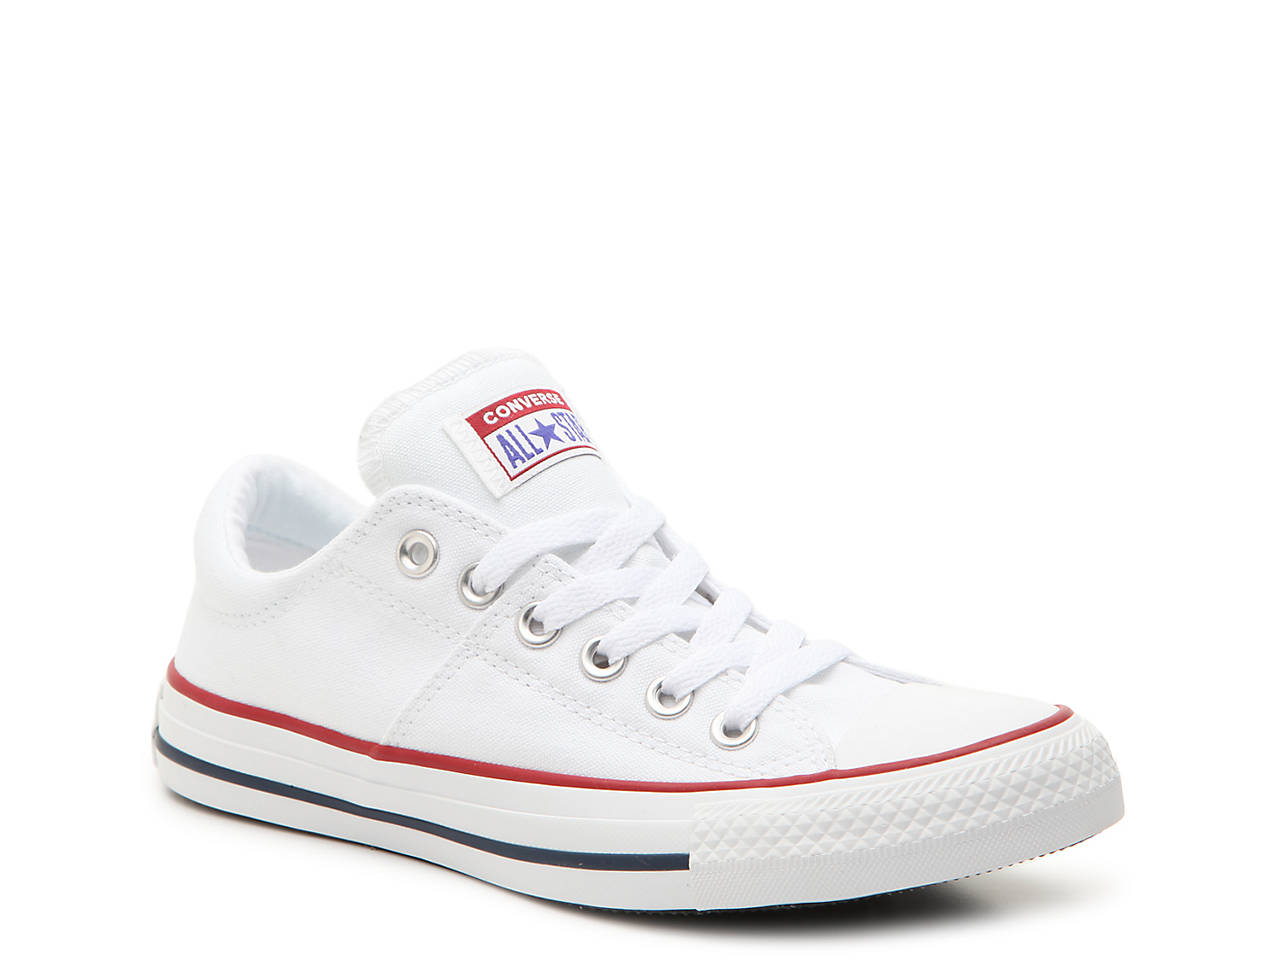 28b733c0768daa Converse Chuck Taylor All Star Madison Sneaker - Women s Women s ...